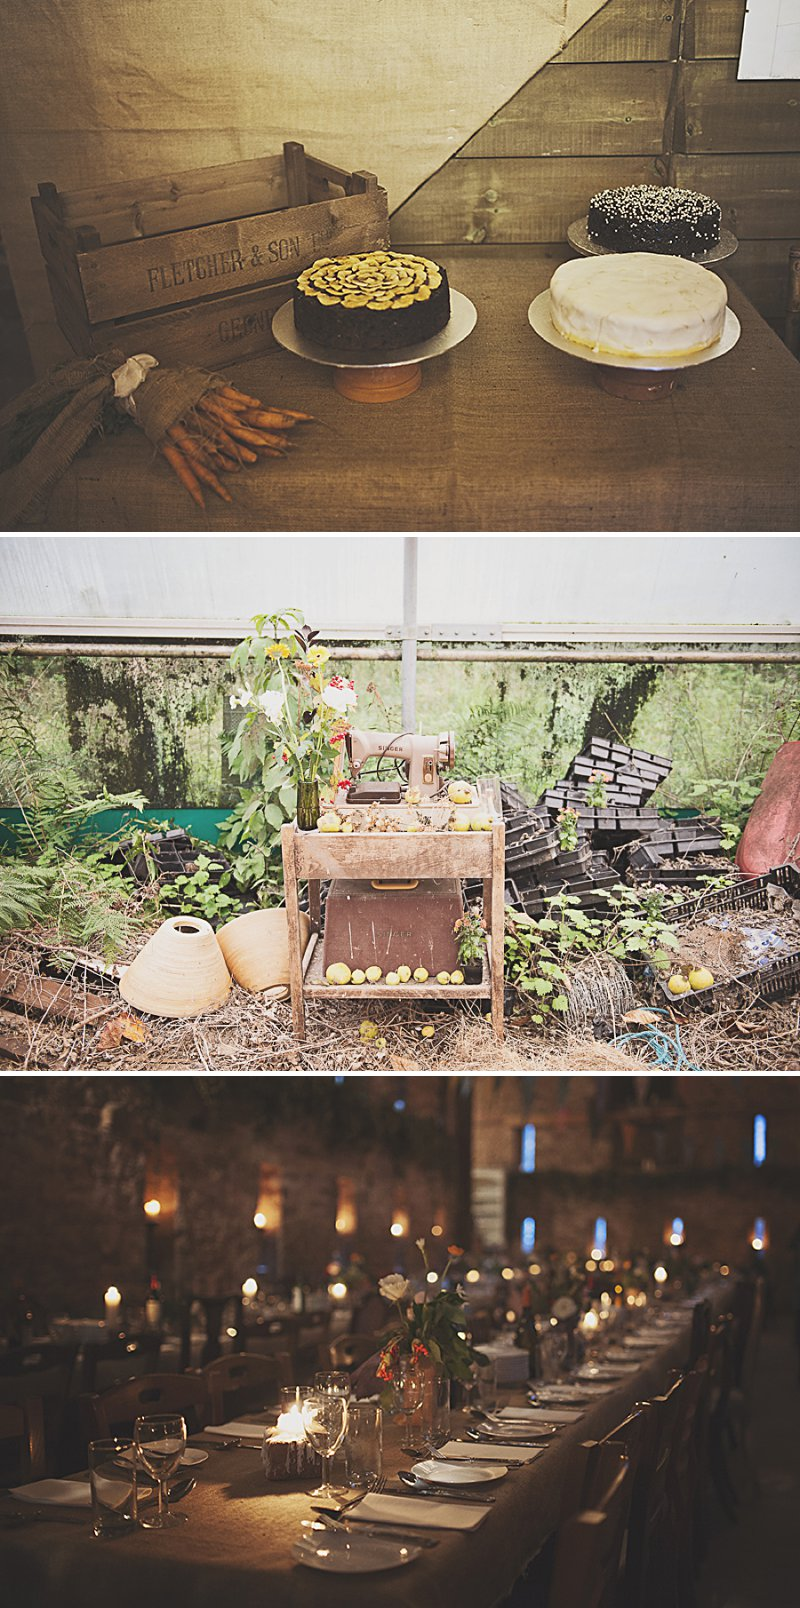 A DIY Wedding with homemade flowers, flamingo art, a polytunnel ceremony, apples, pumpkins, vintage dress and suit and vegetable bouquets.  Apple sharing ceremony at home with photography by Camilla Rosa_0006